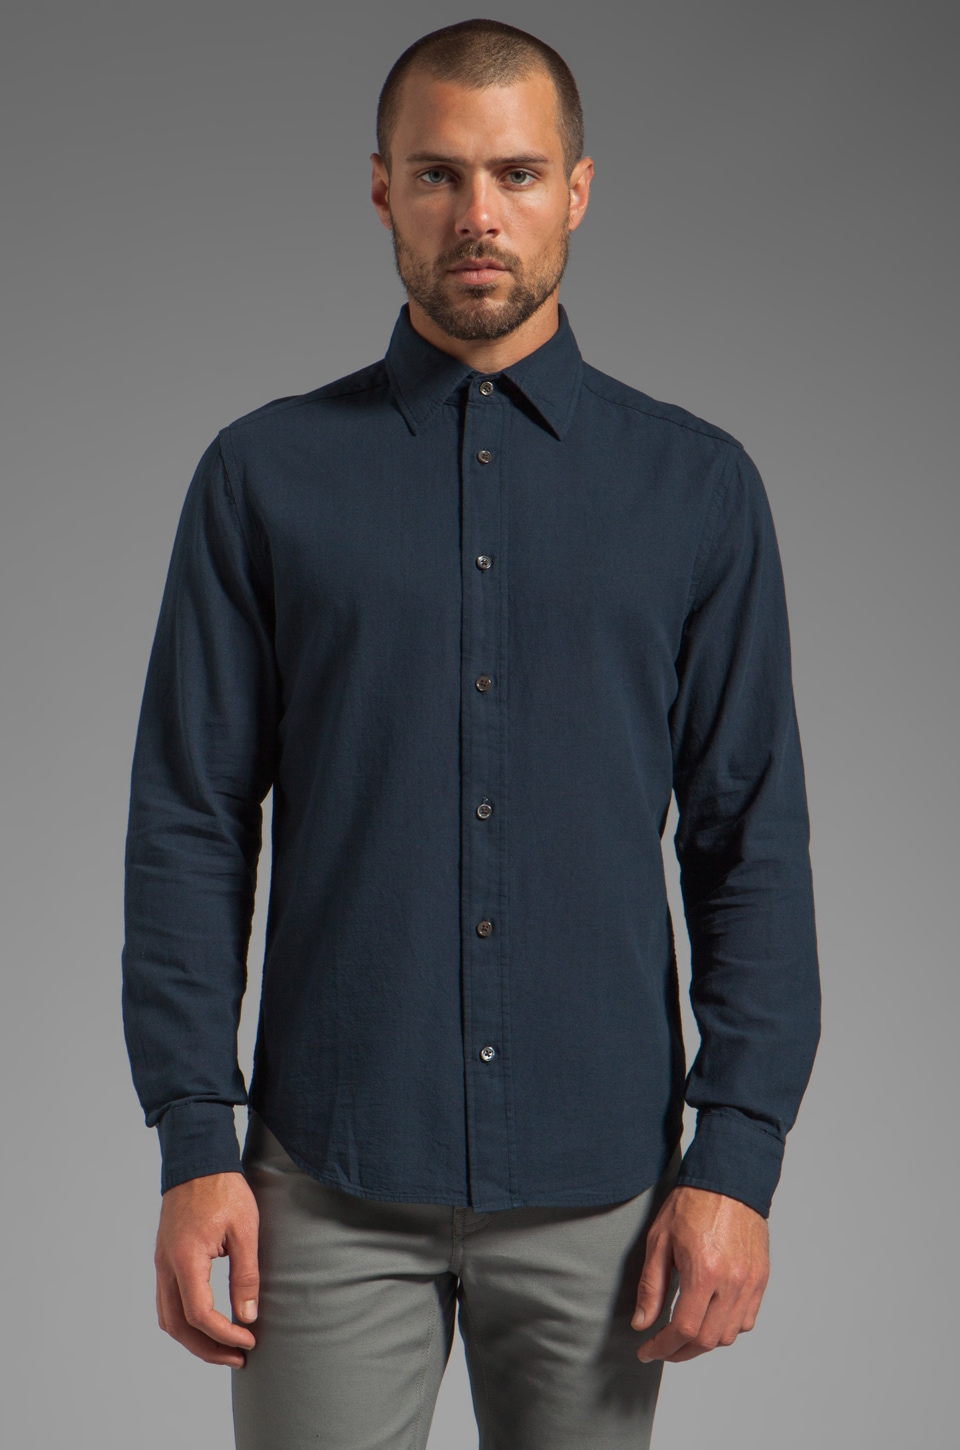 Closed Gilbert Soft Chambray Shirt in Black Iris